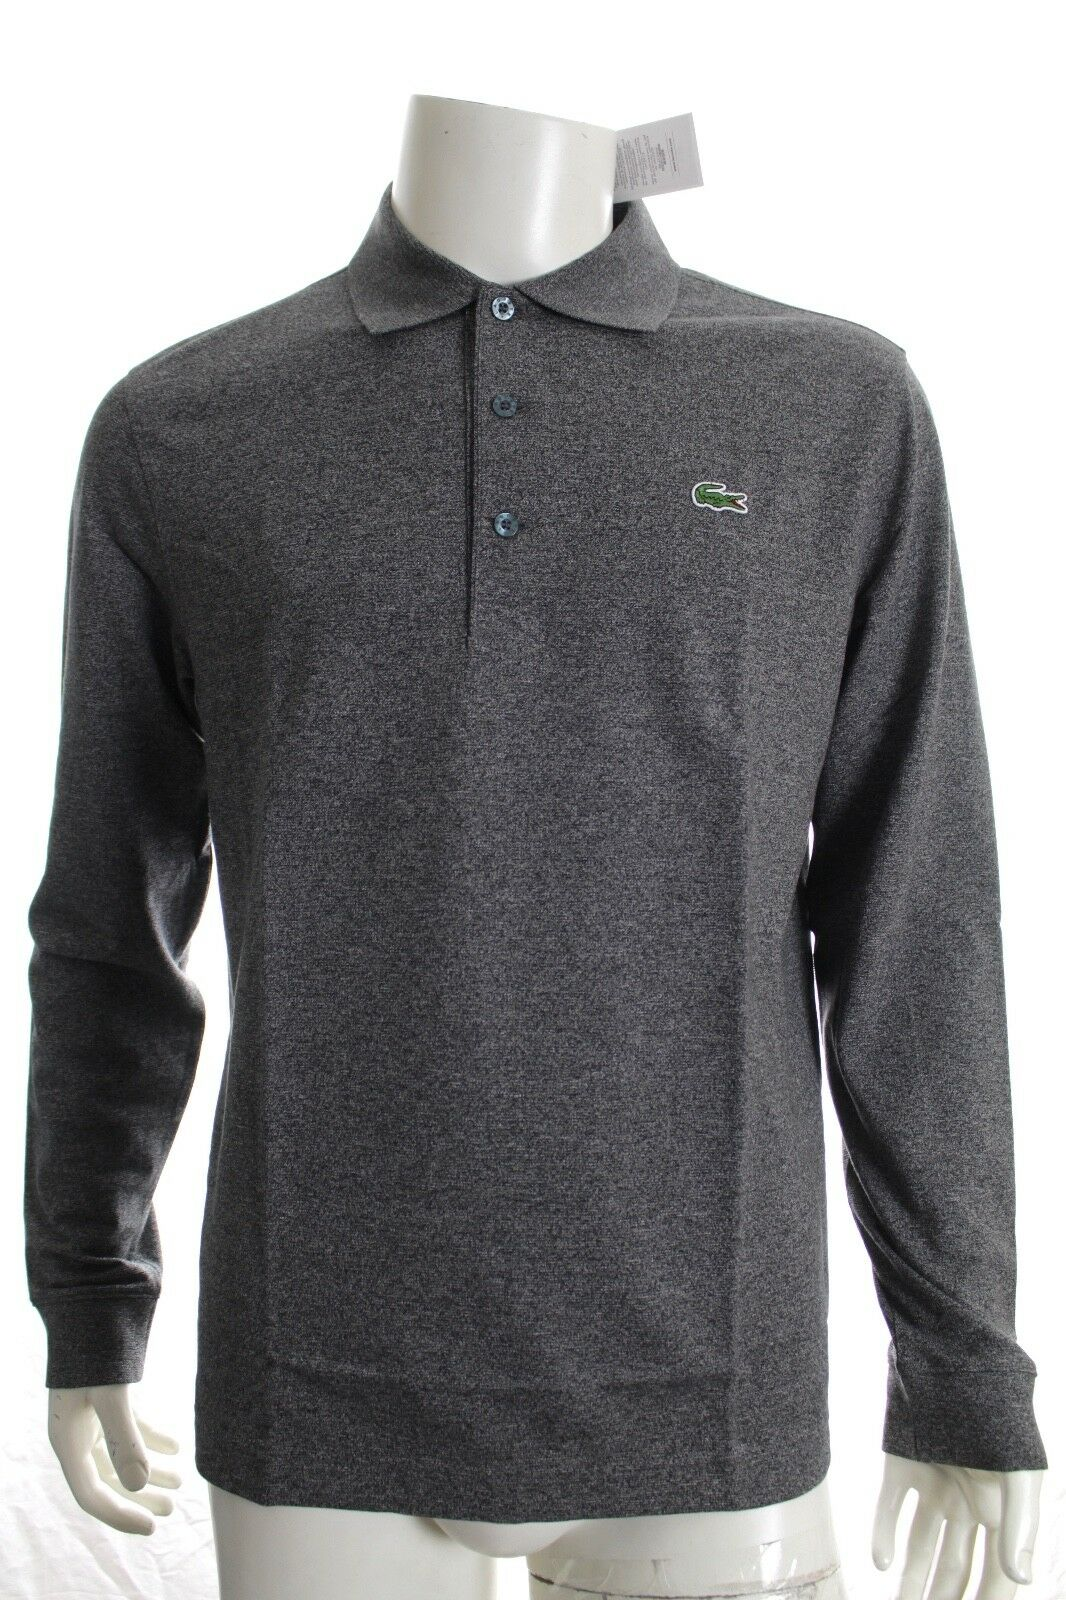 164e0a791 Lacoste Yh9521 Grey Slim Fit Polo Cotton Shirt Long Sleeve Size 5 L ...